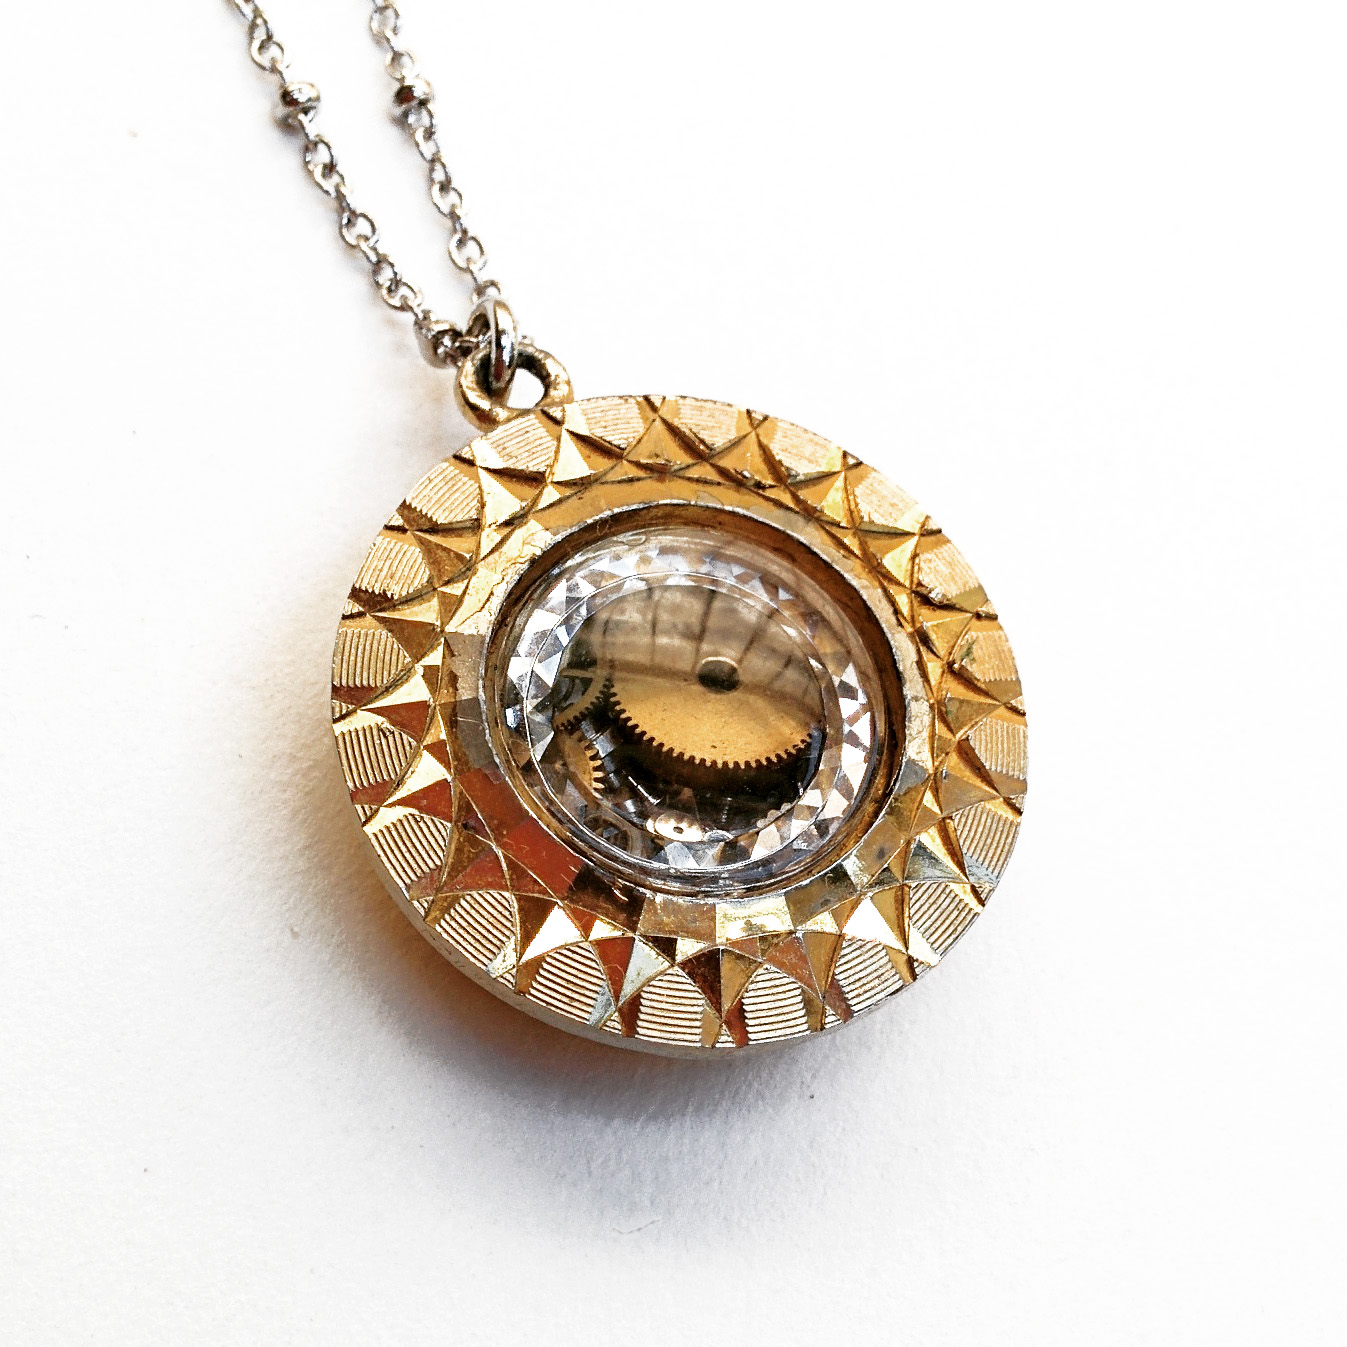 Shake it! Floating watch parts in vintage watch case pendant, full of tiny treasures!